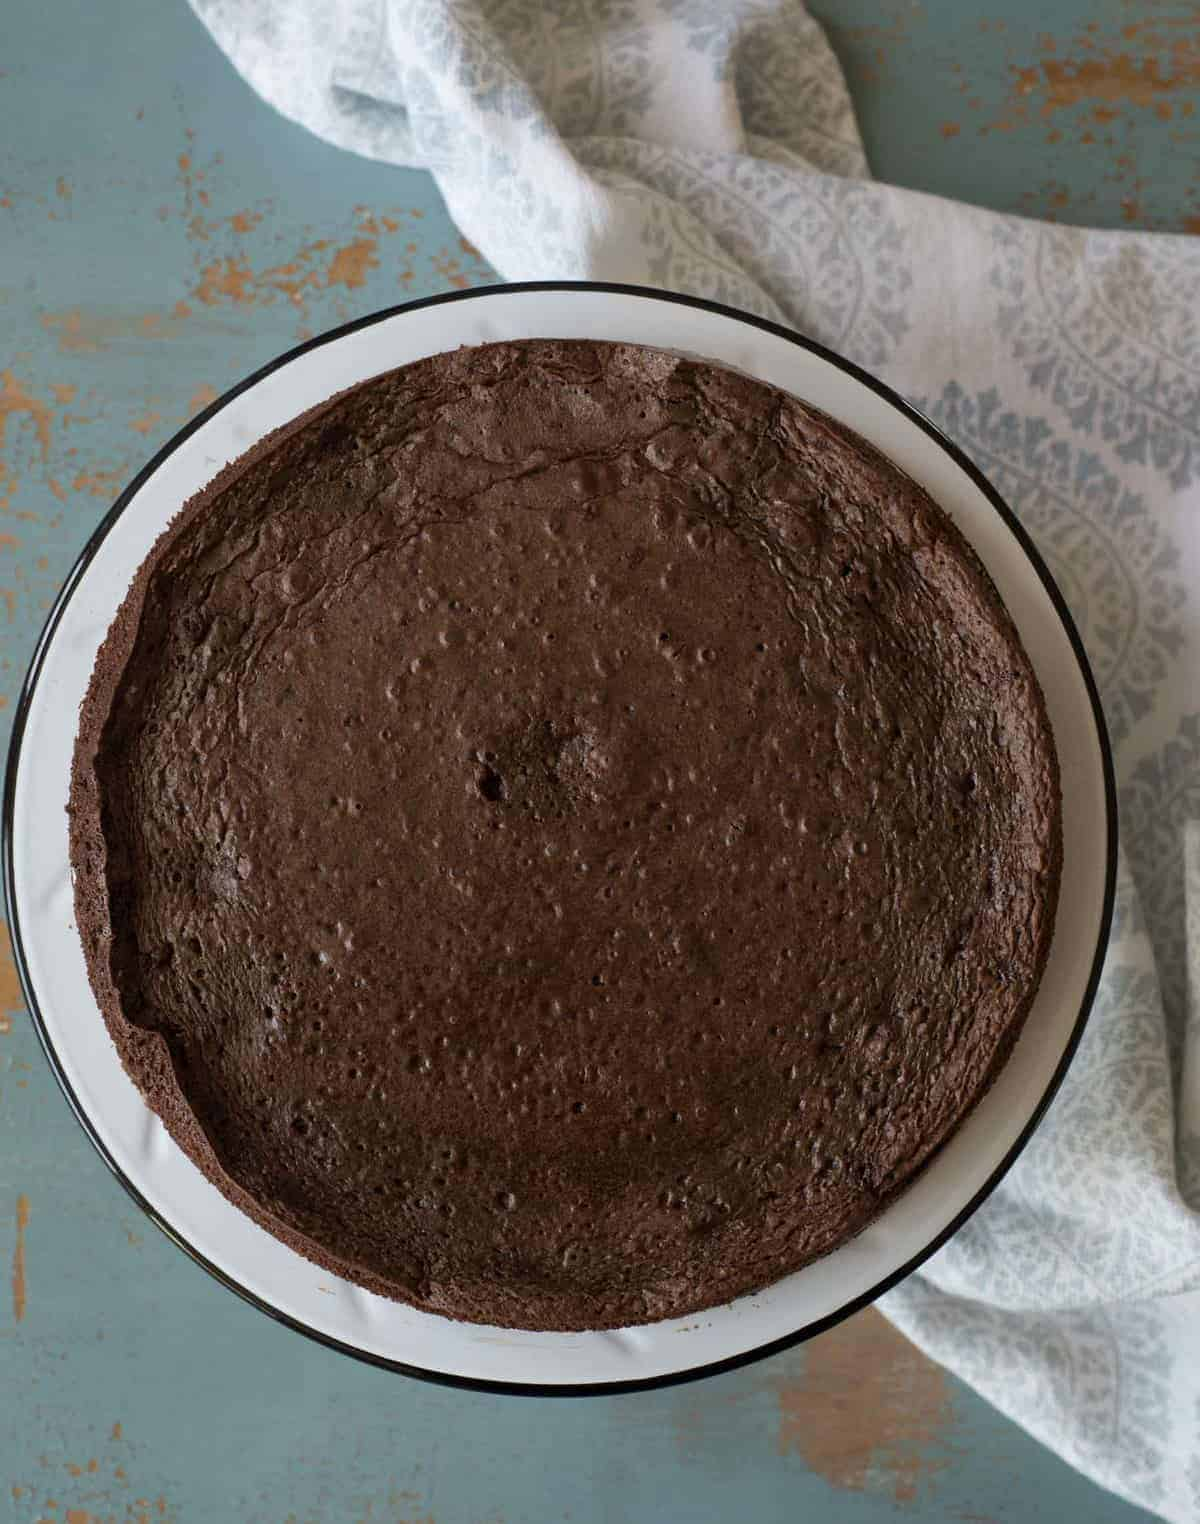 A super simple yet very impressive rich and fudgy flourless chocolate cake recipe that is made with common ingredients, done in less than 30 minutes, and is naturally gluten free.